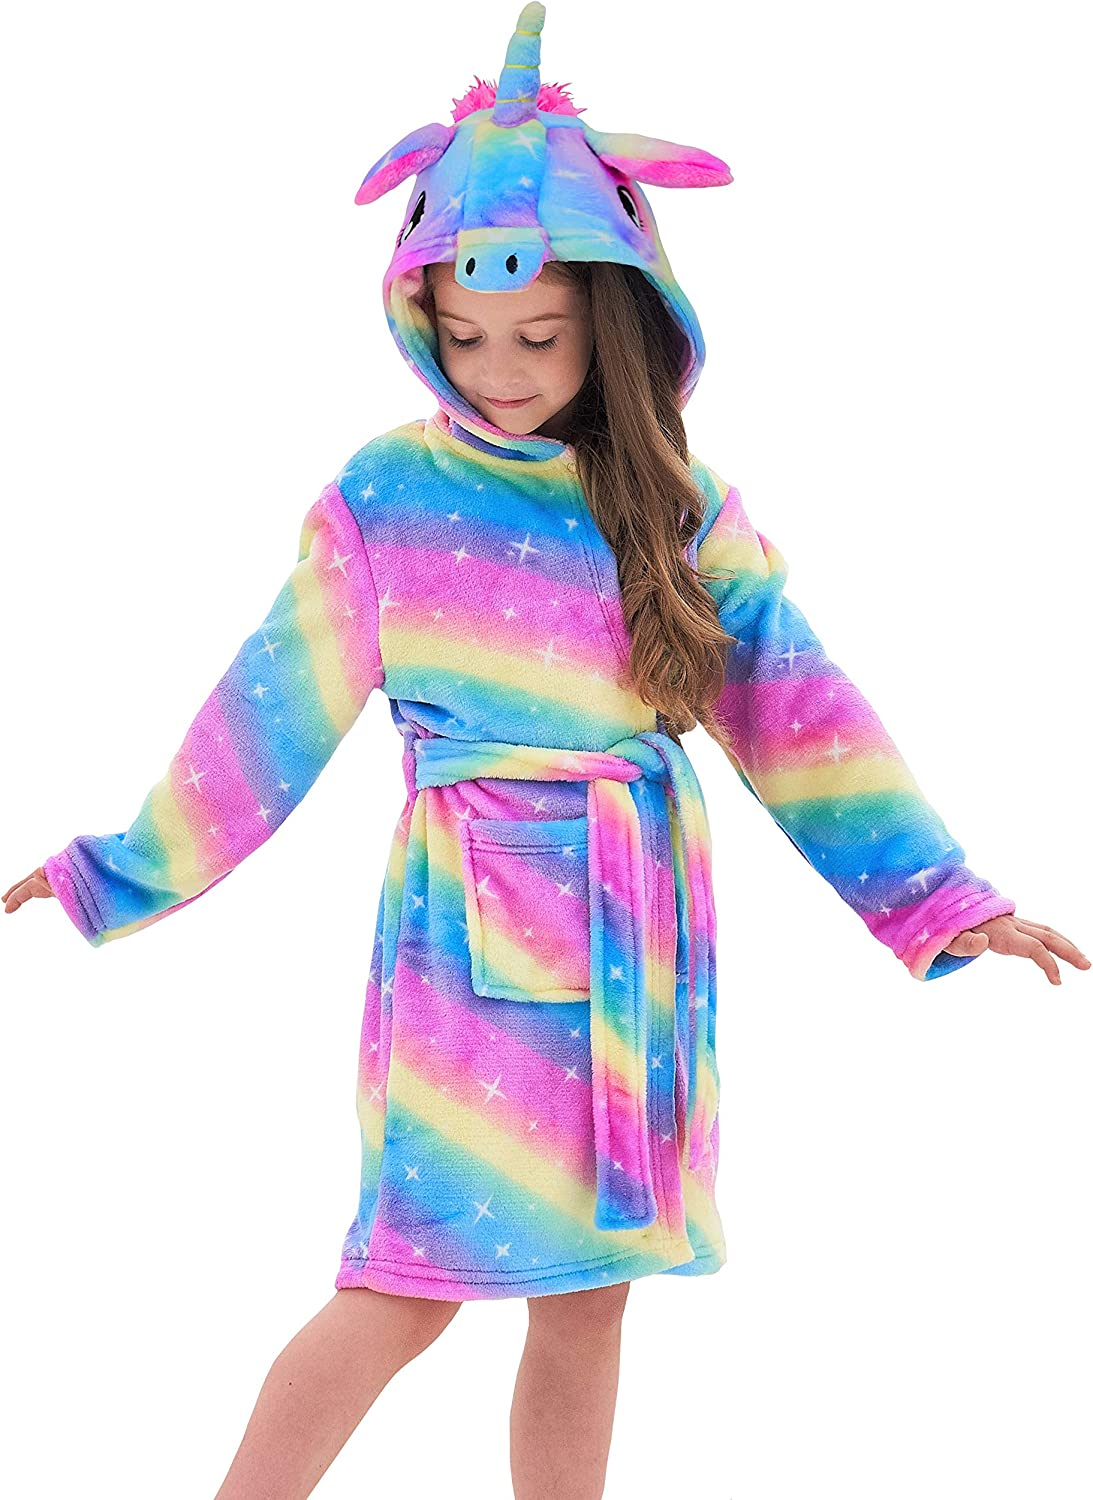 Unicorn Gifts for Girls HulovoX Unicorn Hooded Bathrobe with Slippers